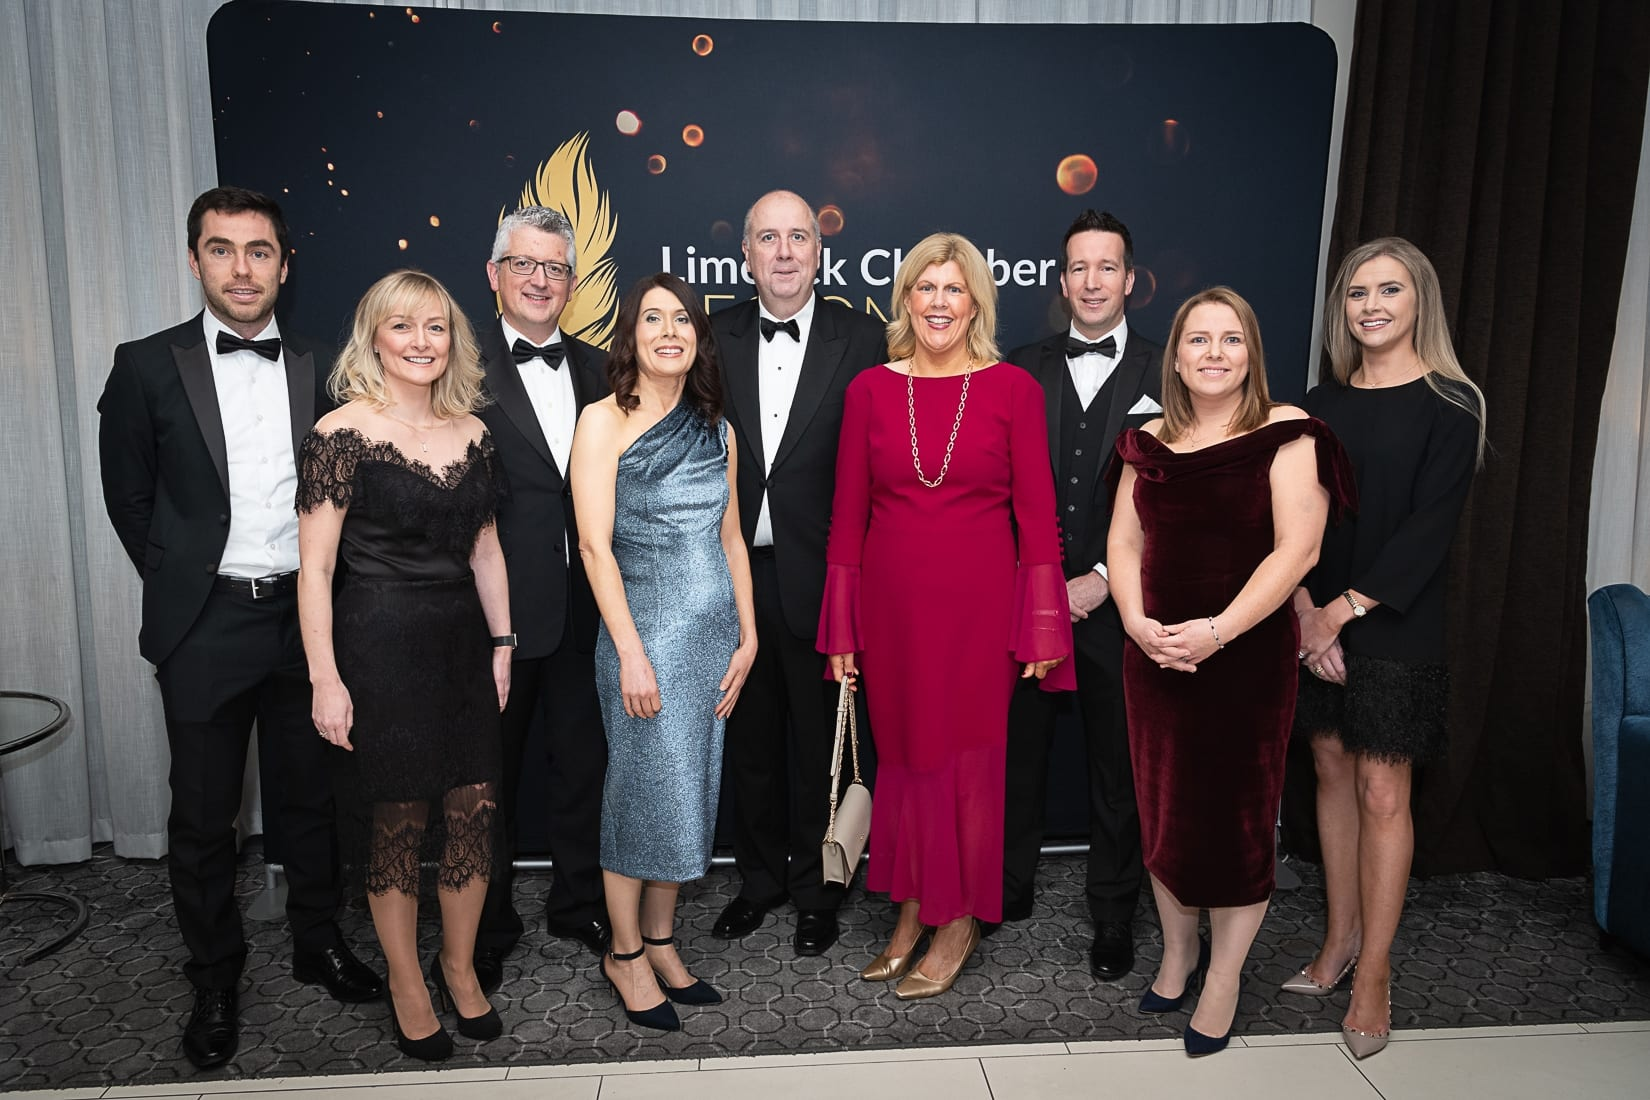 No repro fee-Limerick Chamber President's Dinner and Limerick Chamber Regional Business Awards 2019 which was held in the Strand Hotel on Friday 15th November / Deloitte Sponsors/  - From Left to Right: Conor McGrath, Karen Frawley, Gerard Casey, Mary McNamara, Cathal Treacy, Annette Pearse, Fergal Kenzie, Jane Hallinan, Erika Clancy all from Deloitte.  Photo credit Shauna Kennedy